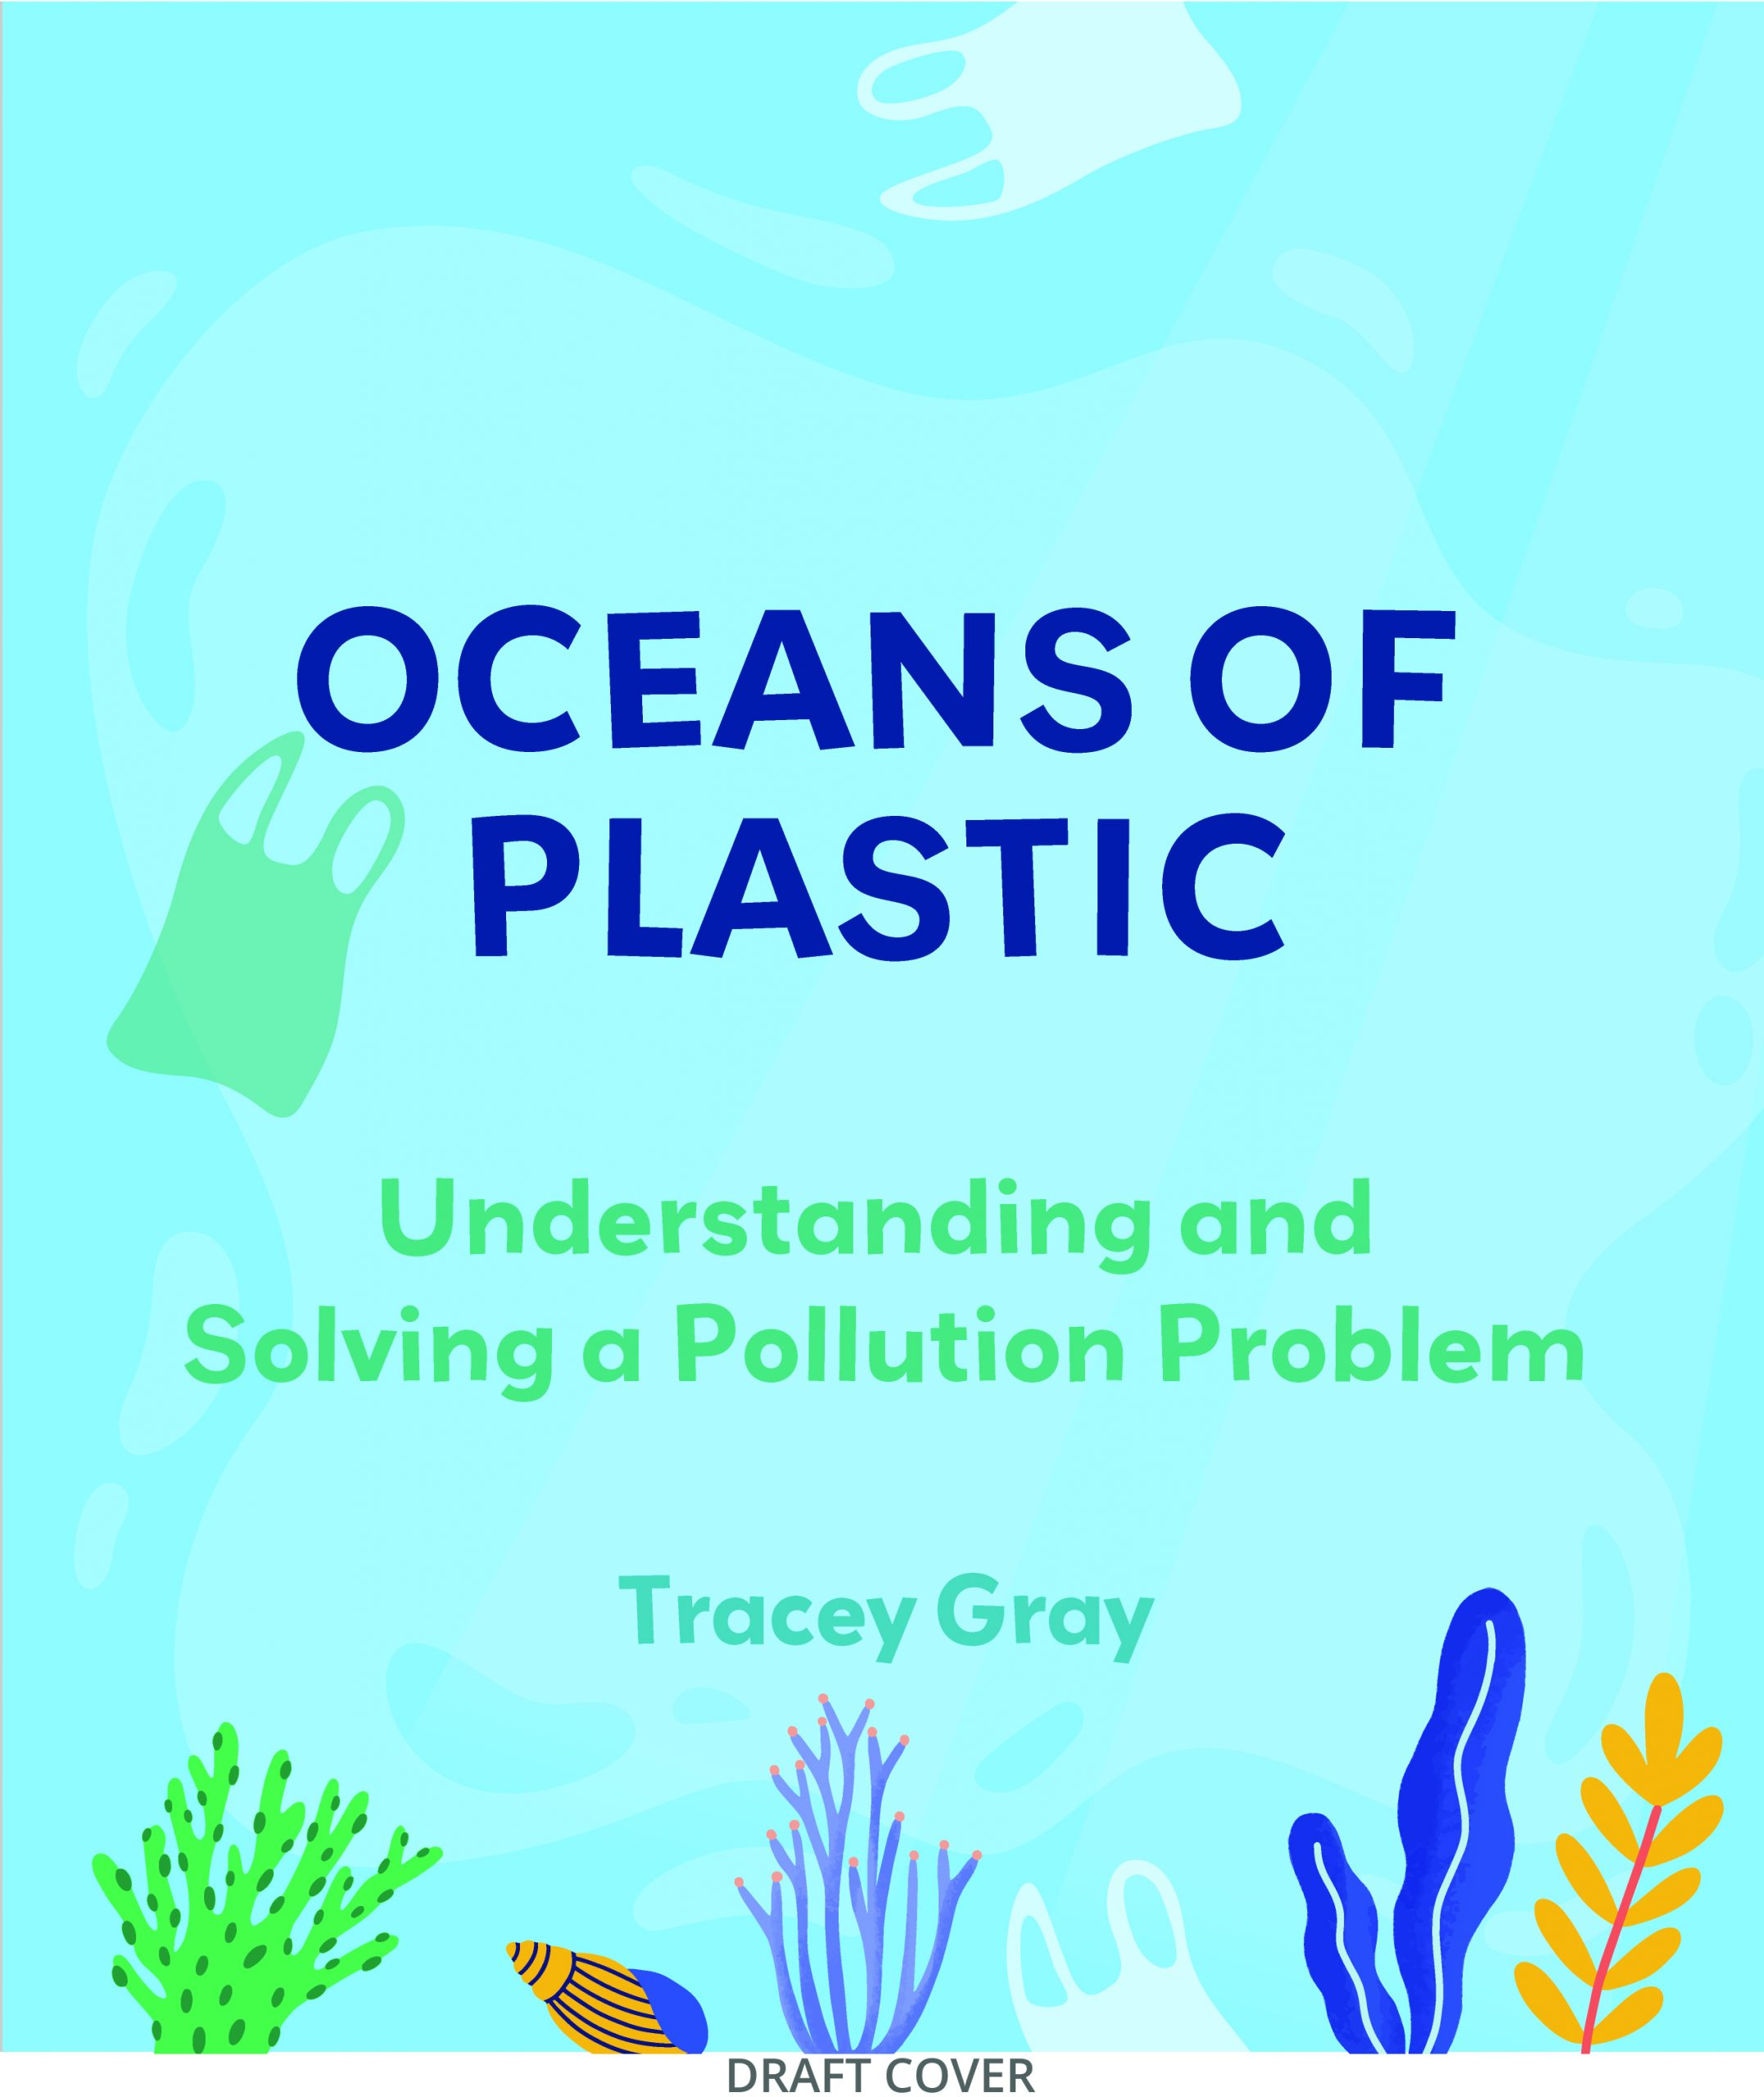 Oceans of Plastic: Understanding and Solving a Pollution Problem